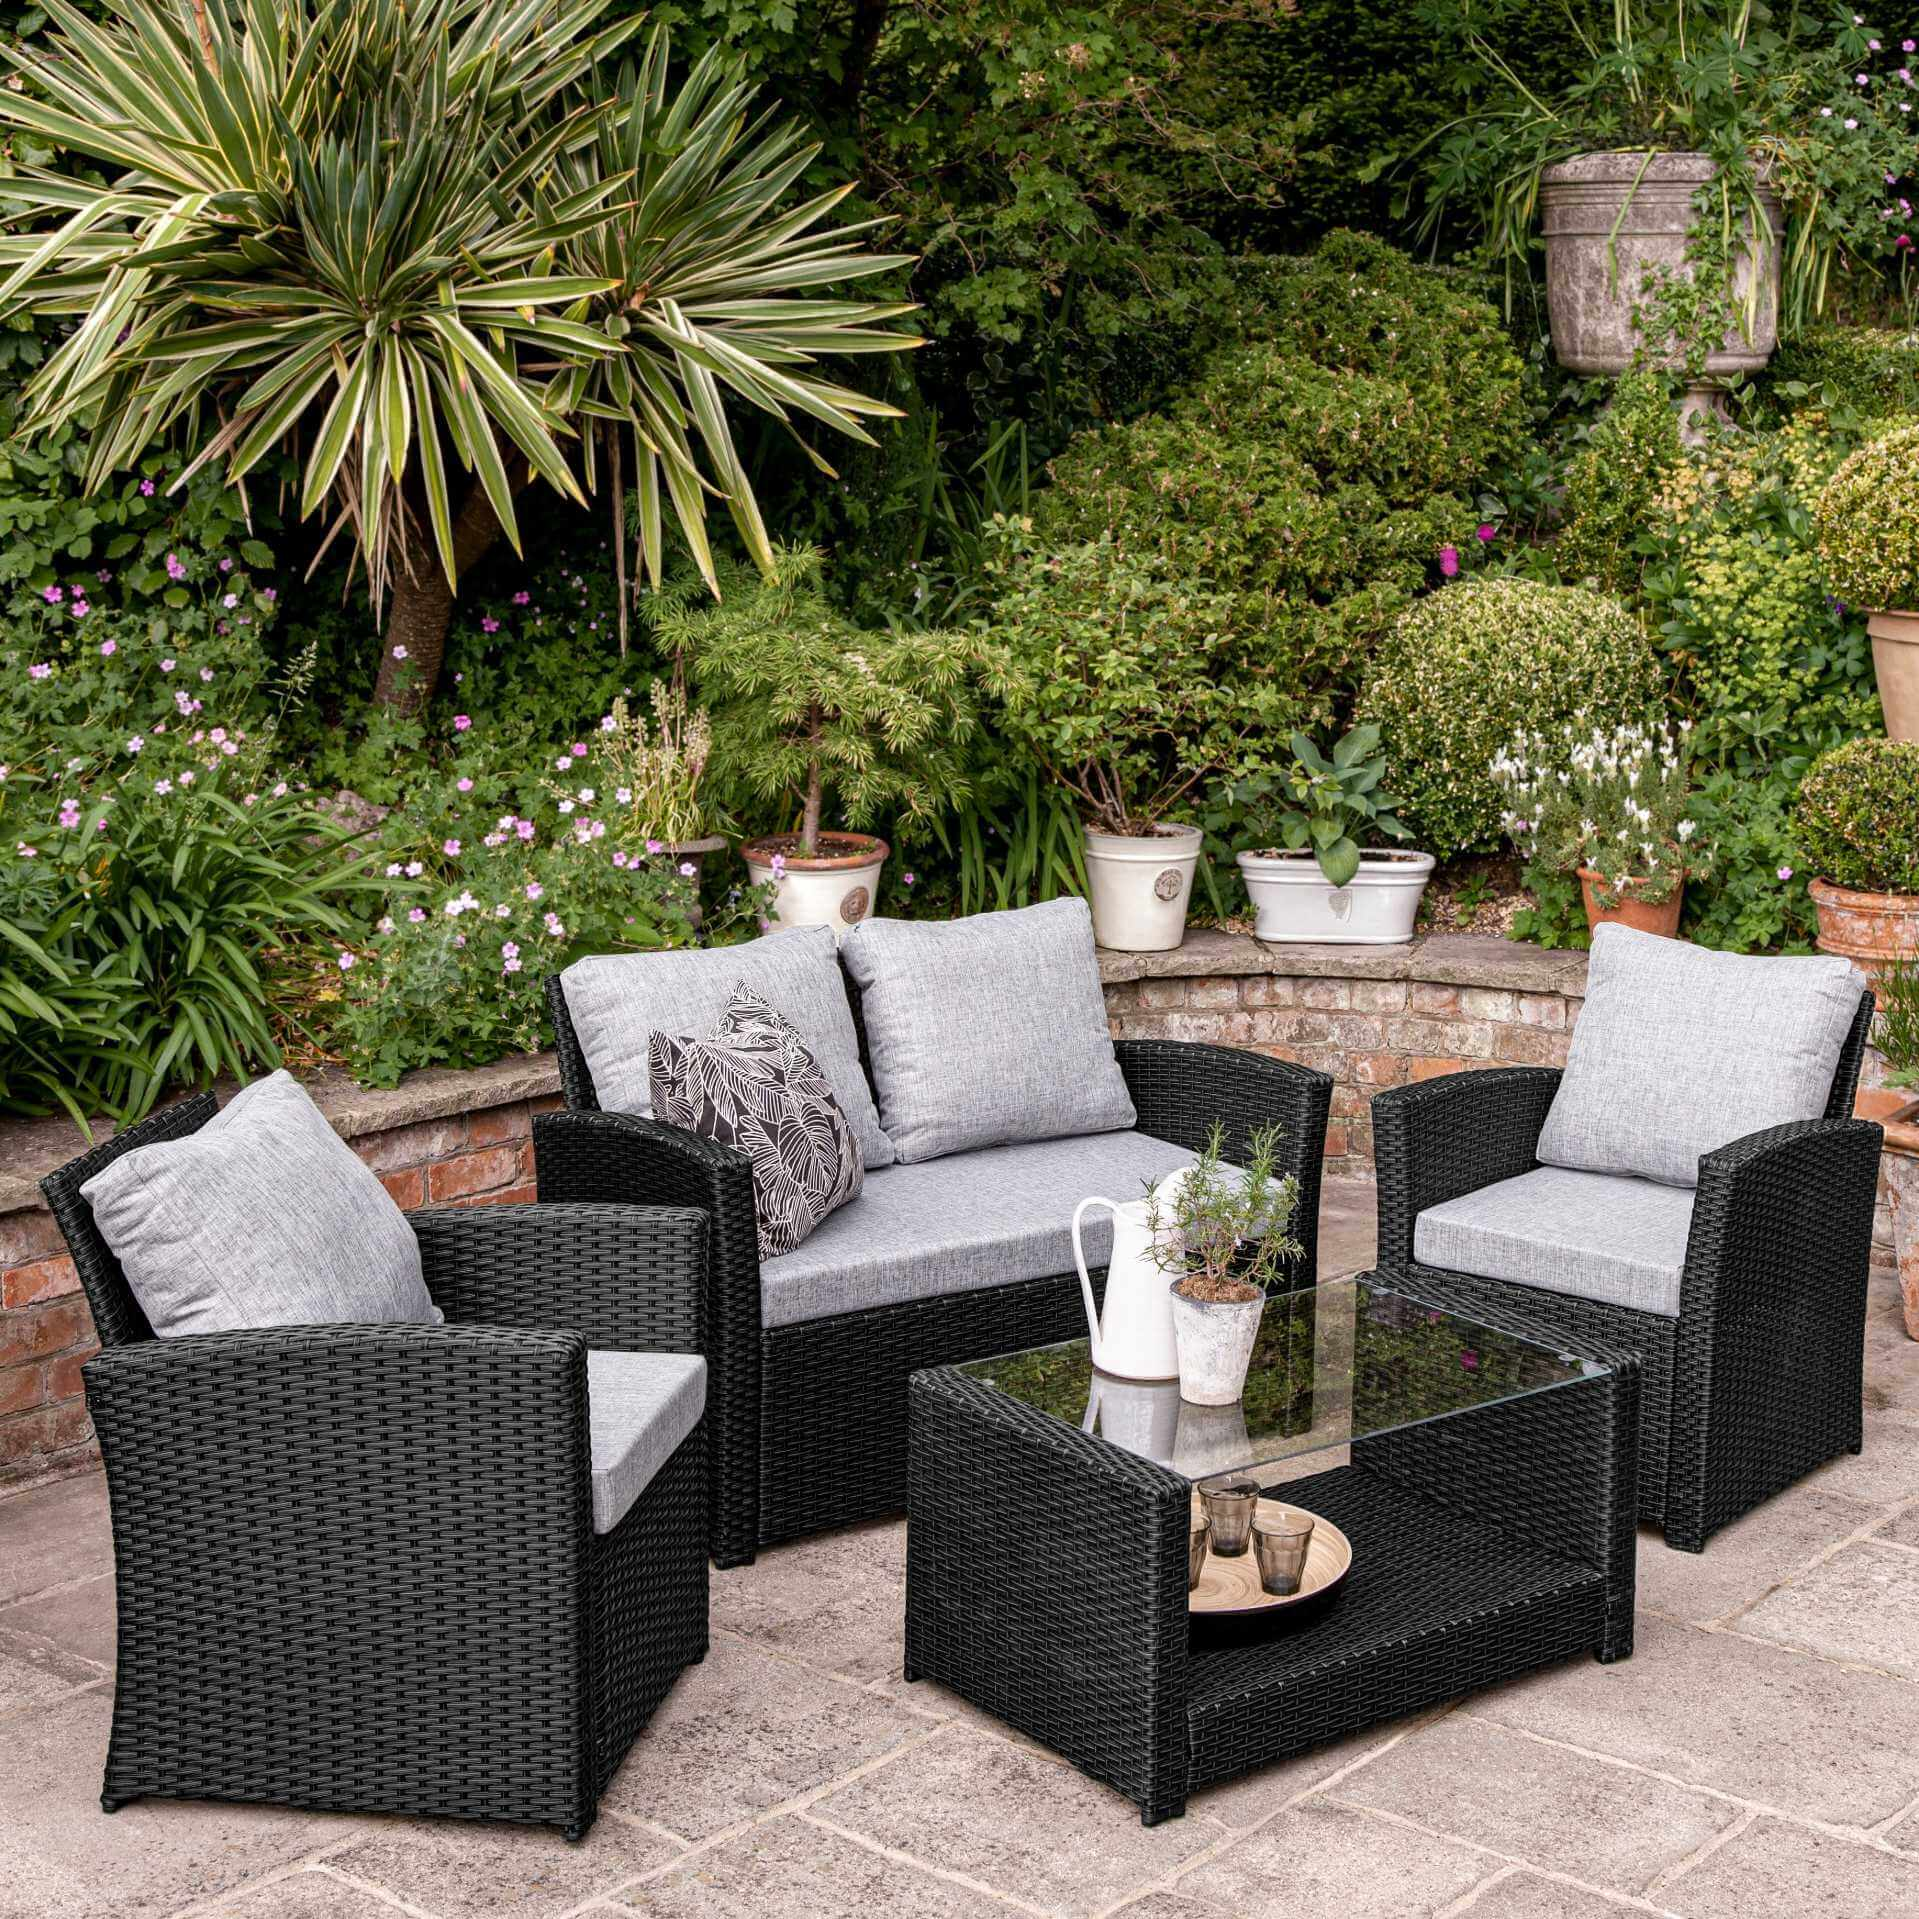 Rattan Garden Sofa Set - 4 Seater - Black Weave - Laura James